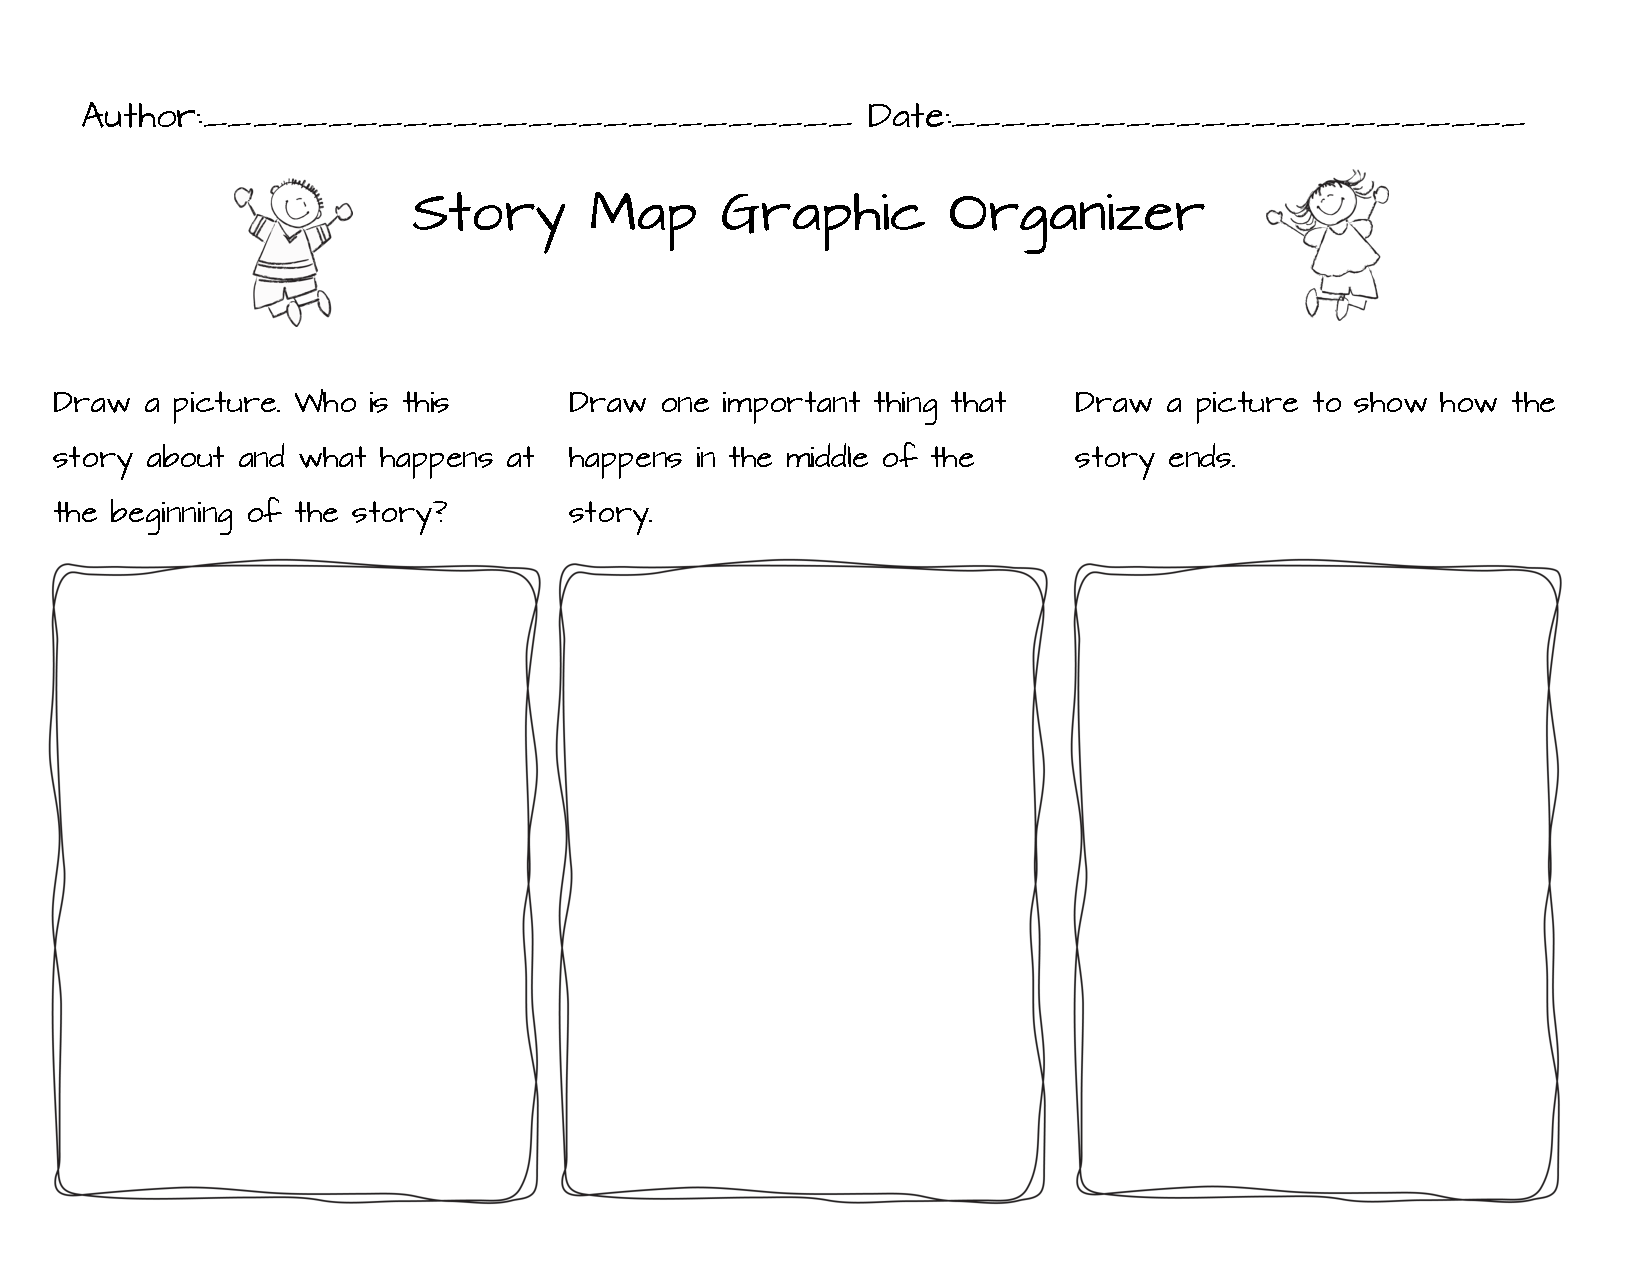 Uncategorized Beginning Middle And End Worksheets 246 best beginning middle and end images on pinterest graphic organizer story map author date draw a